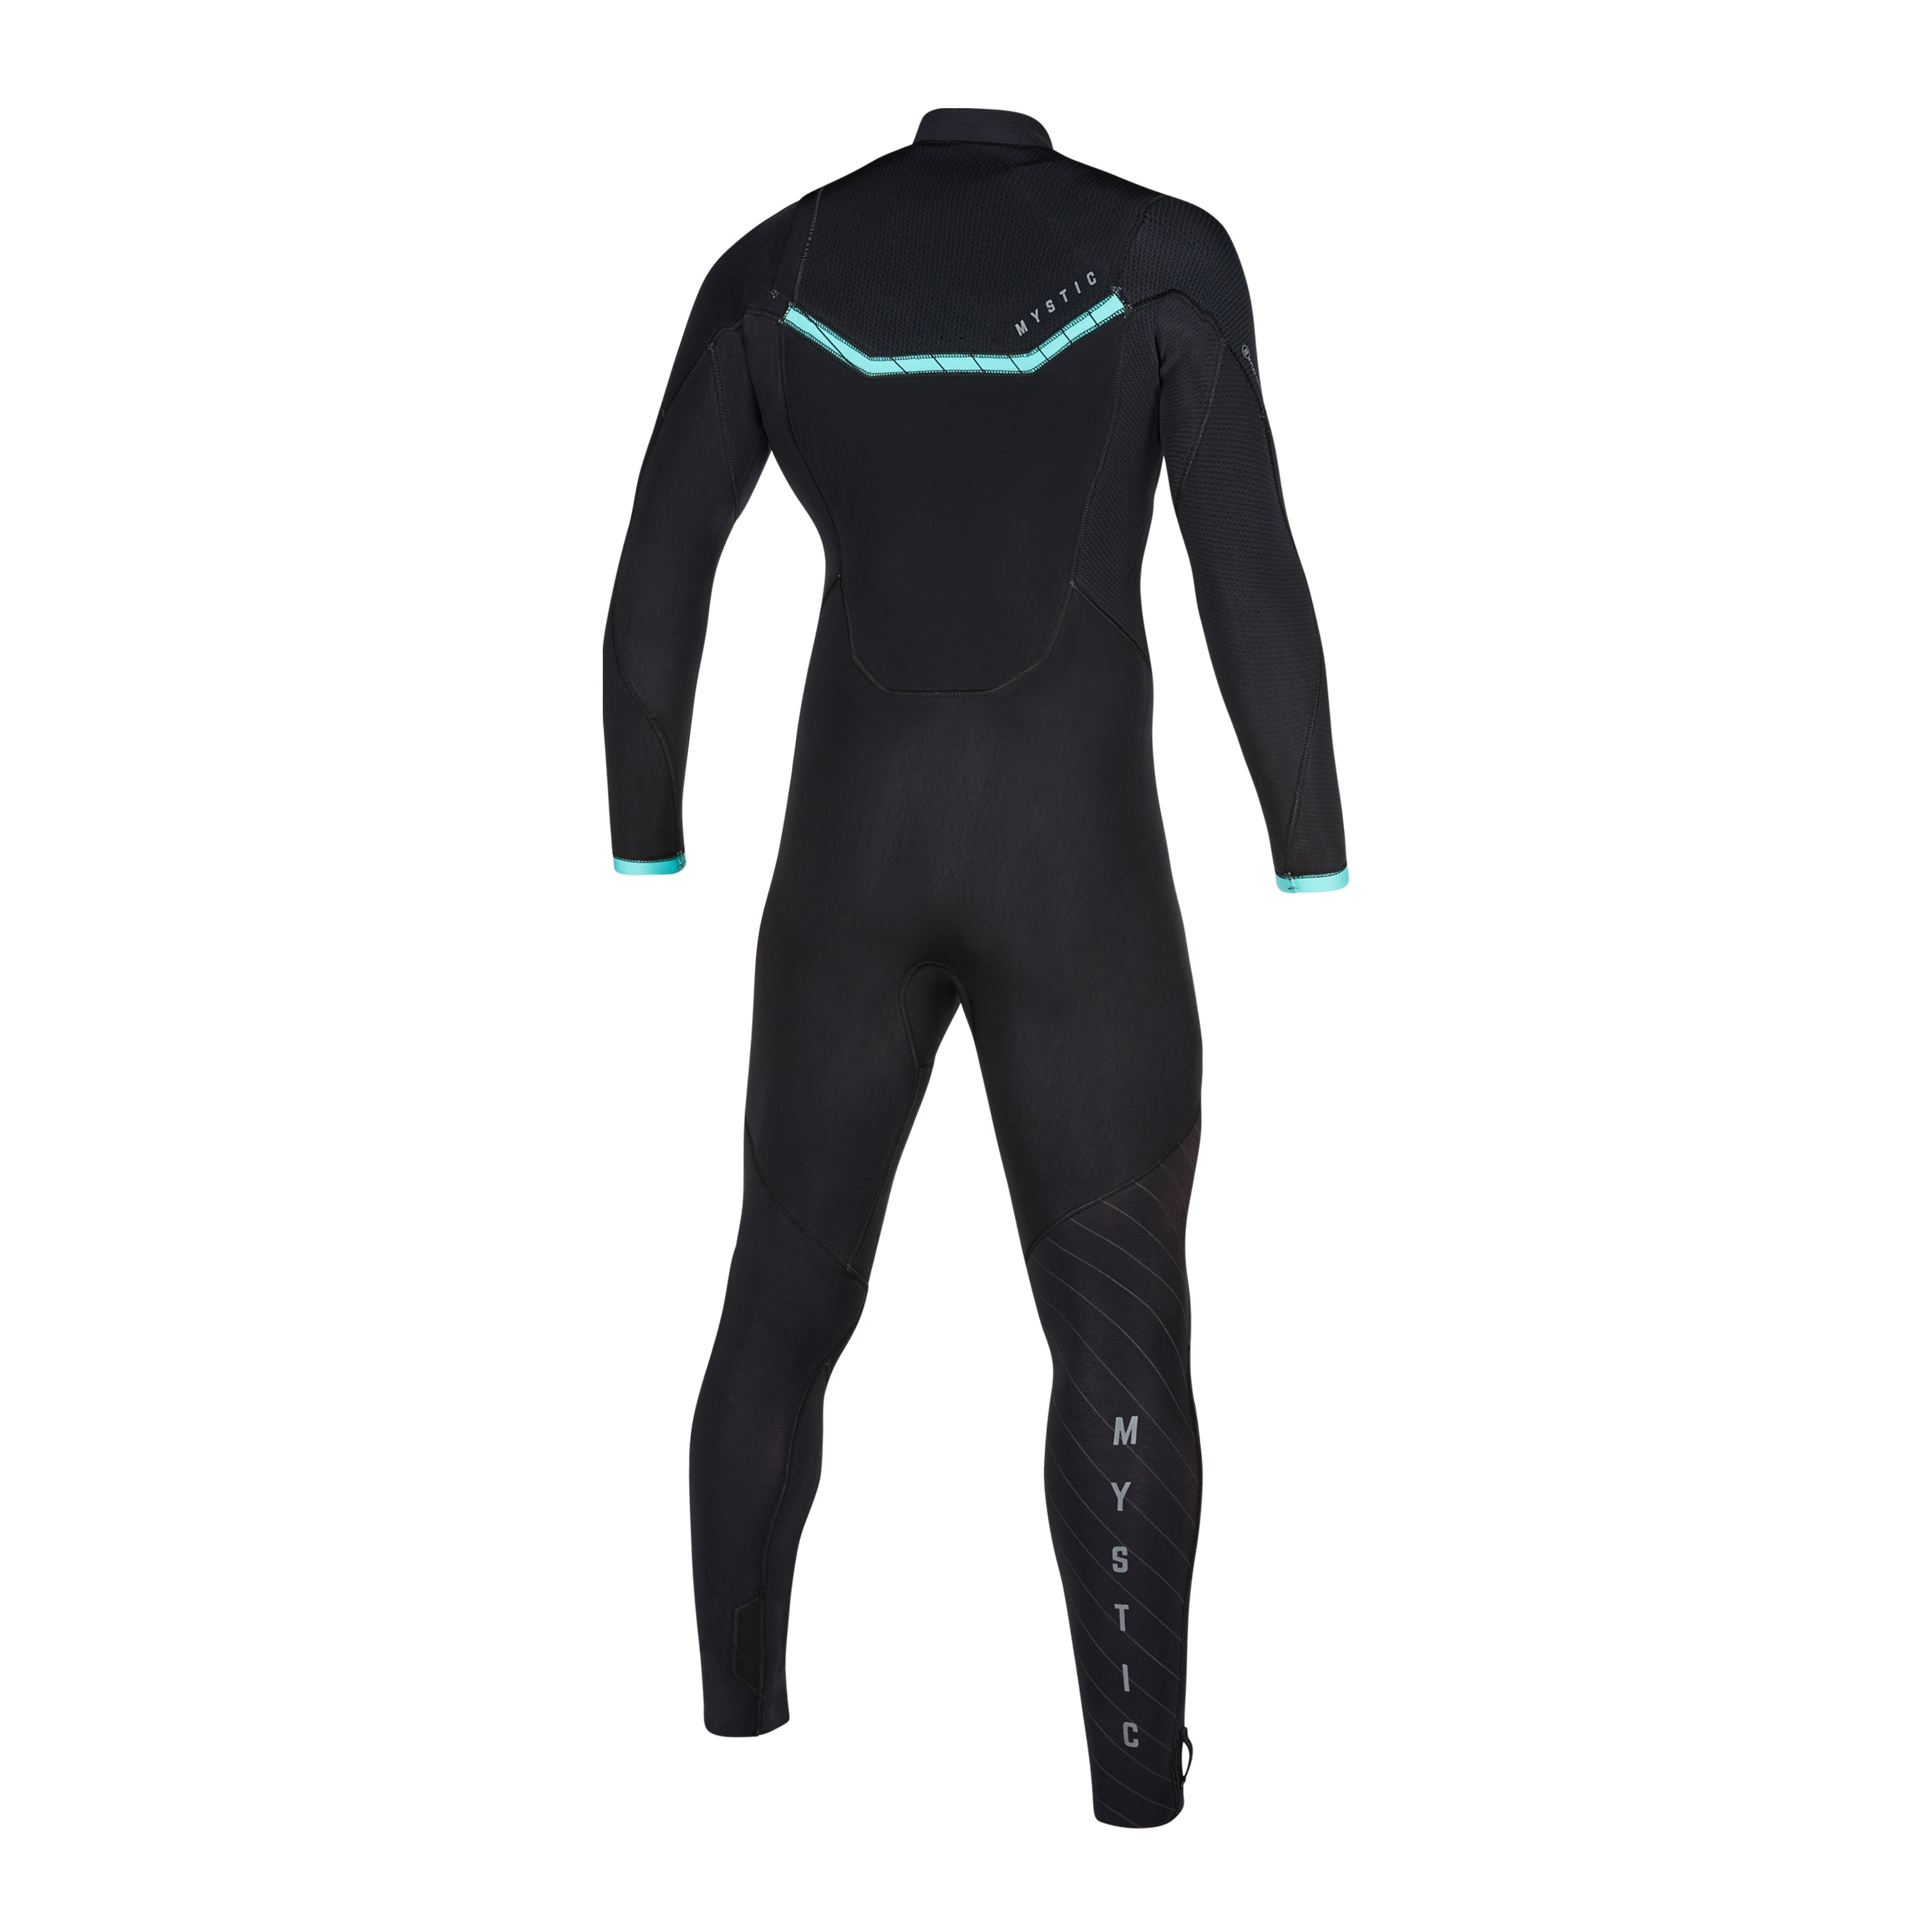 Marshall 4/3 Front Zip wetsuit Black / Mint